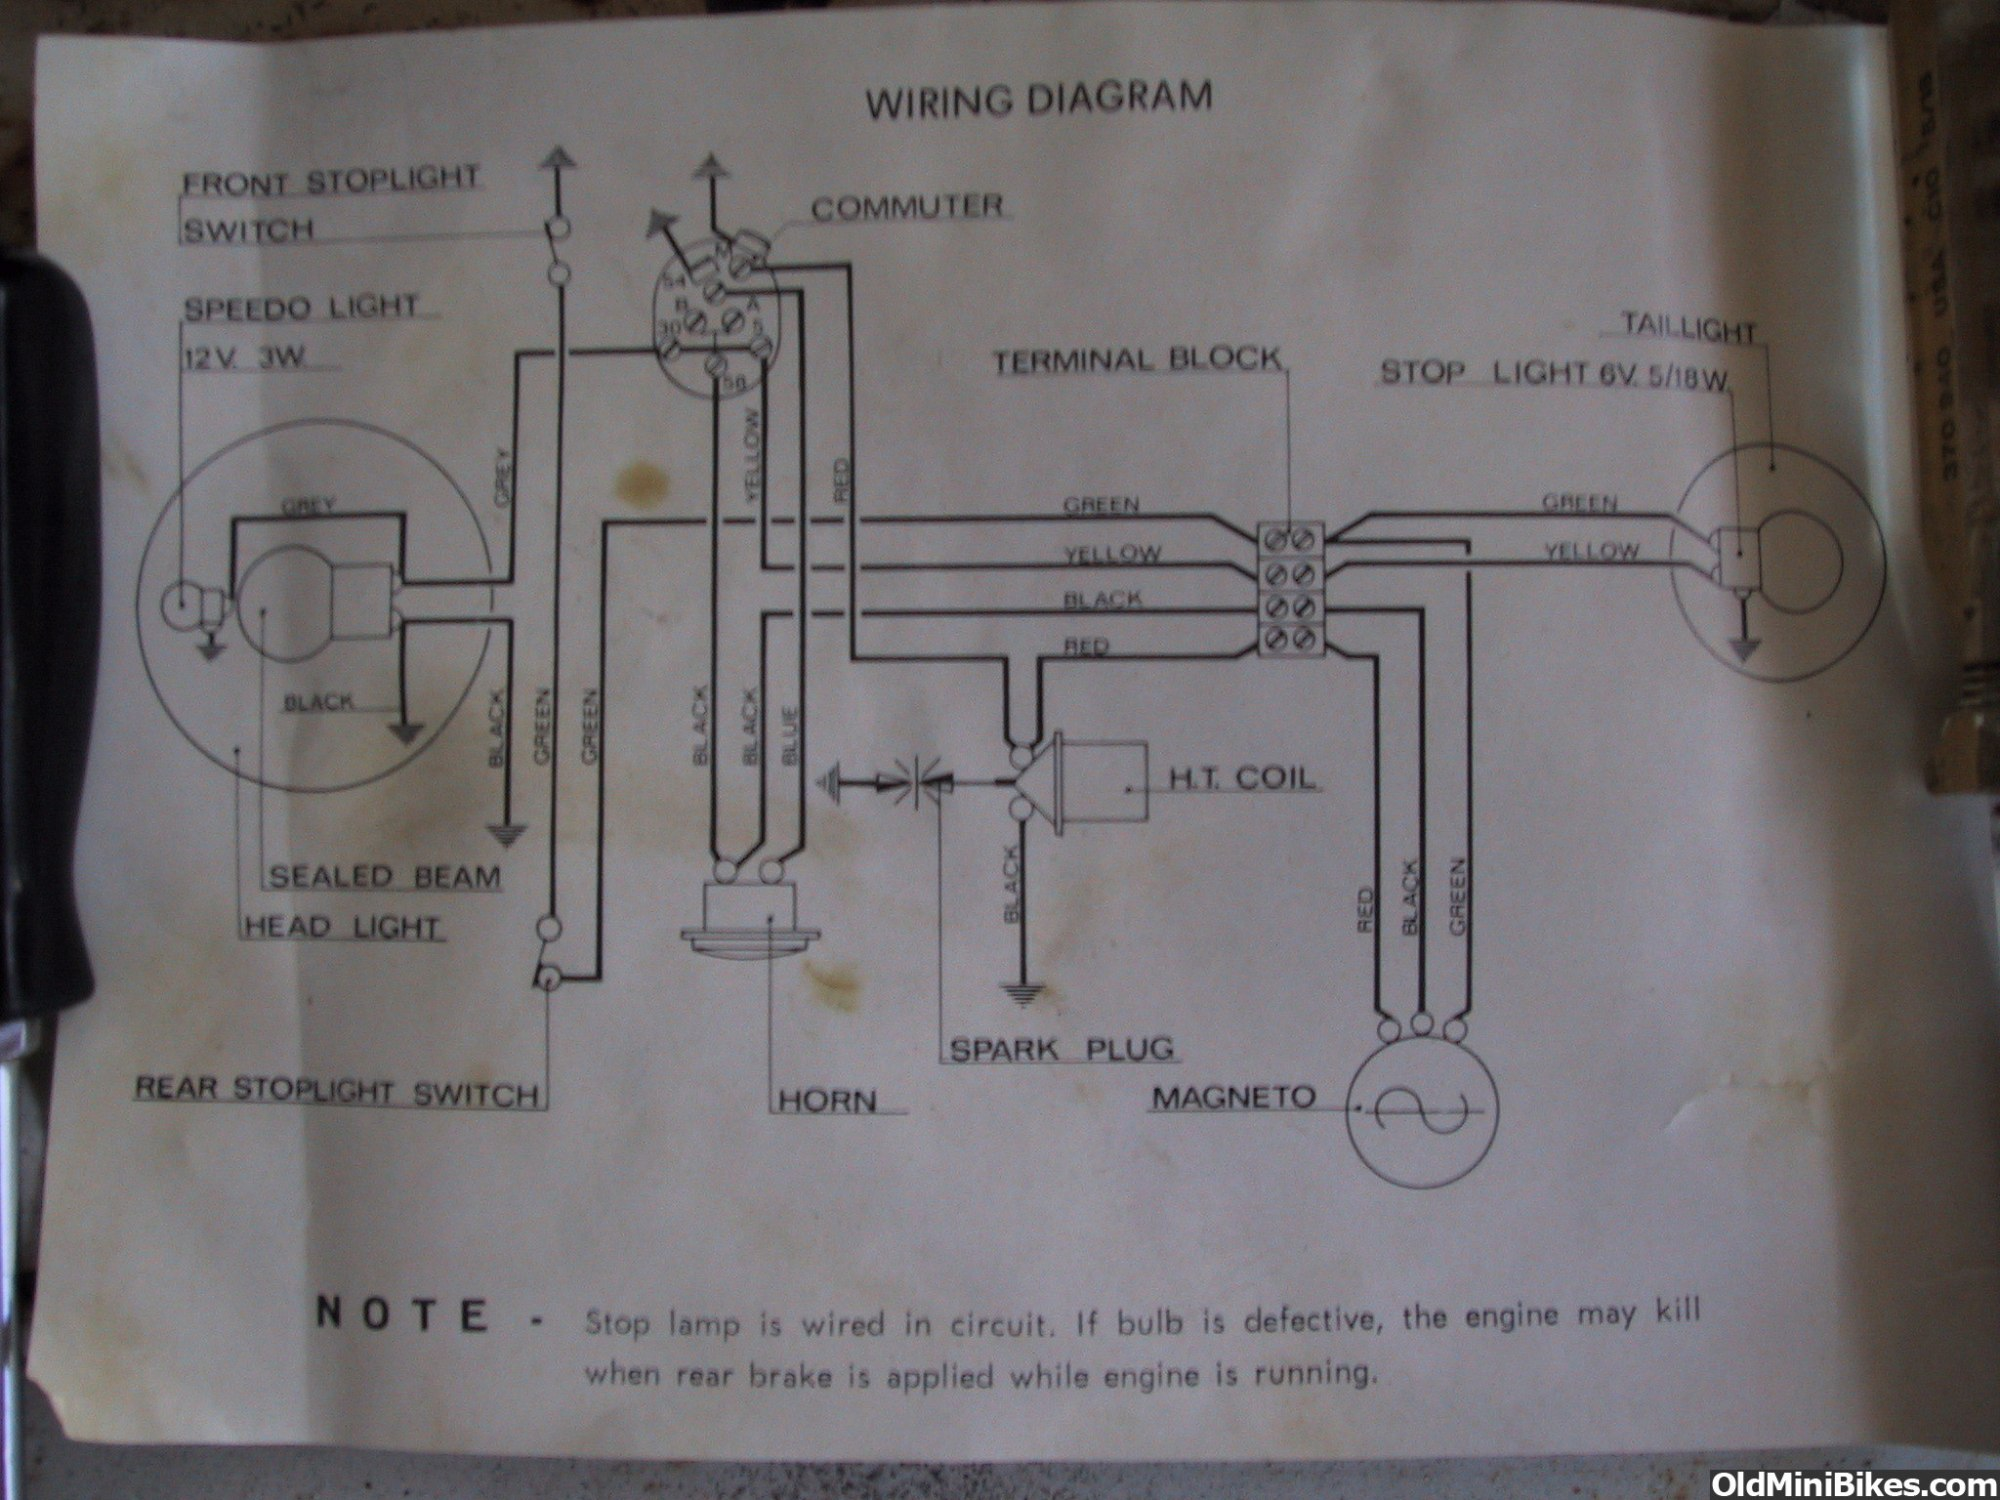 hight resolution of benelli 250 wiring diagram wiring diagram home benelli 250 wiring diagram